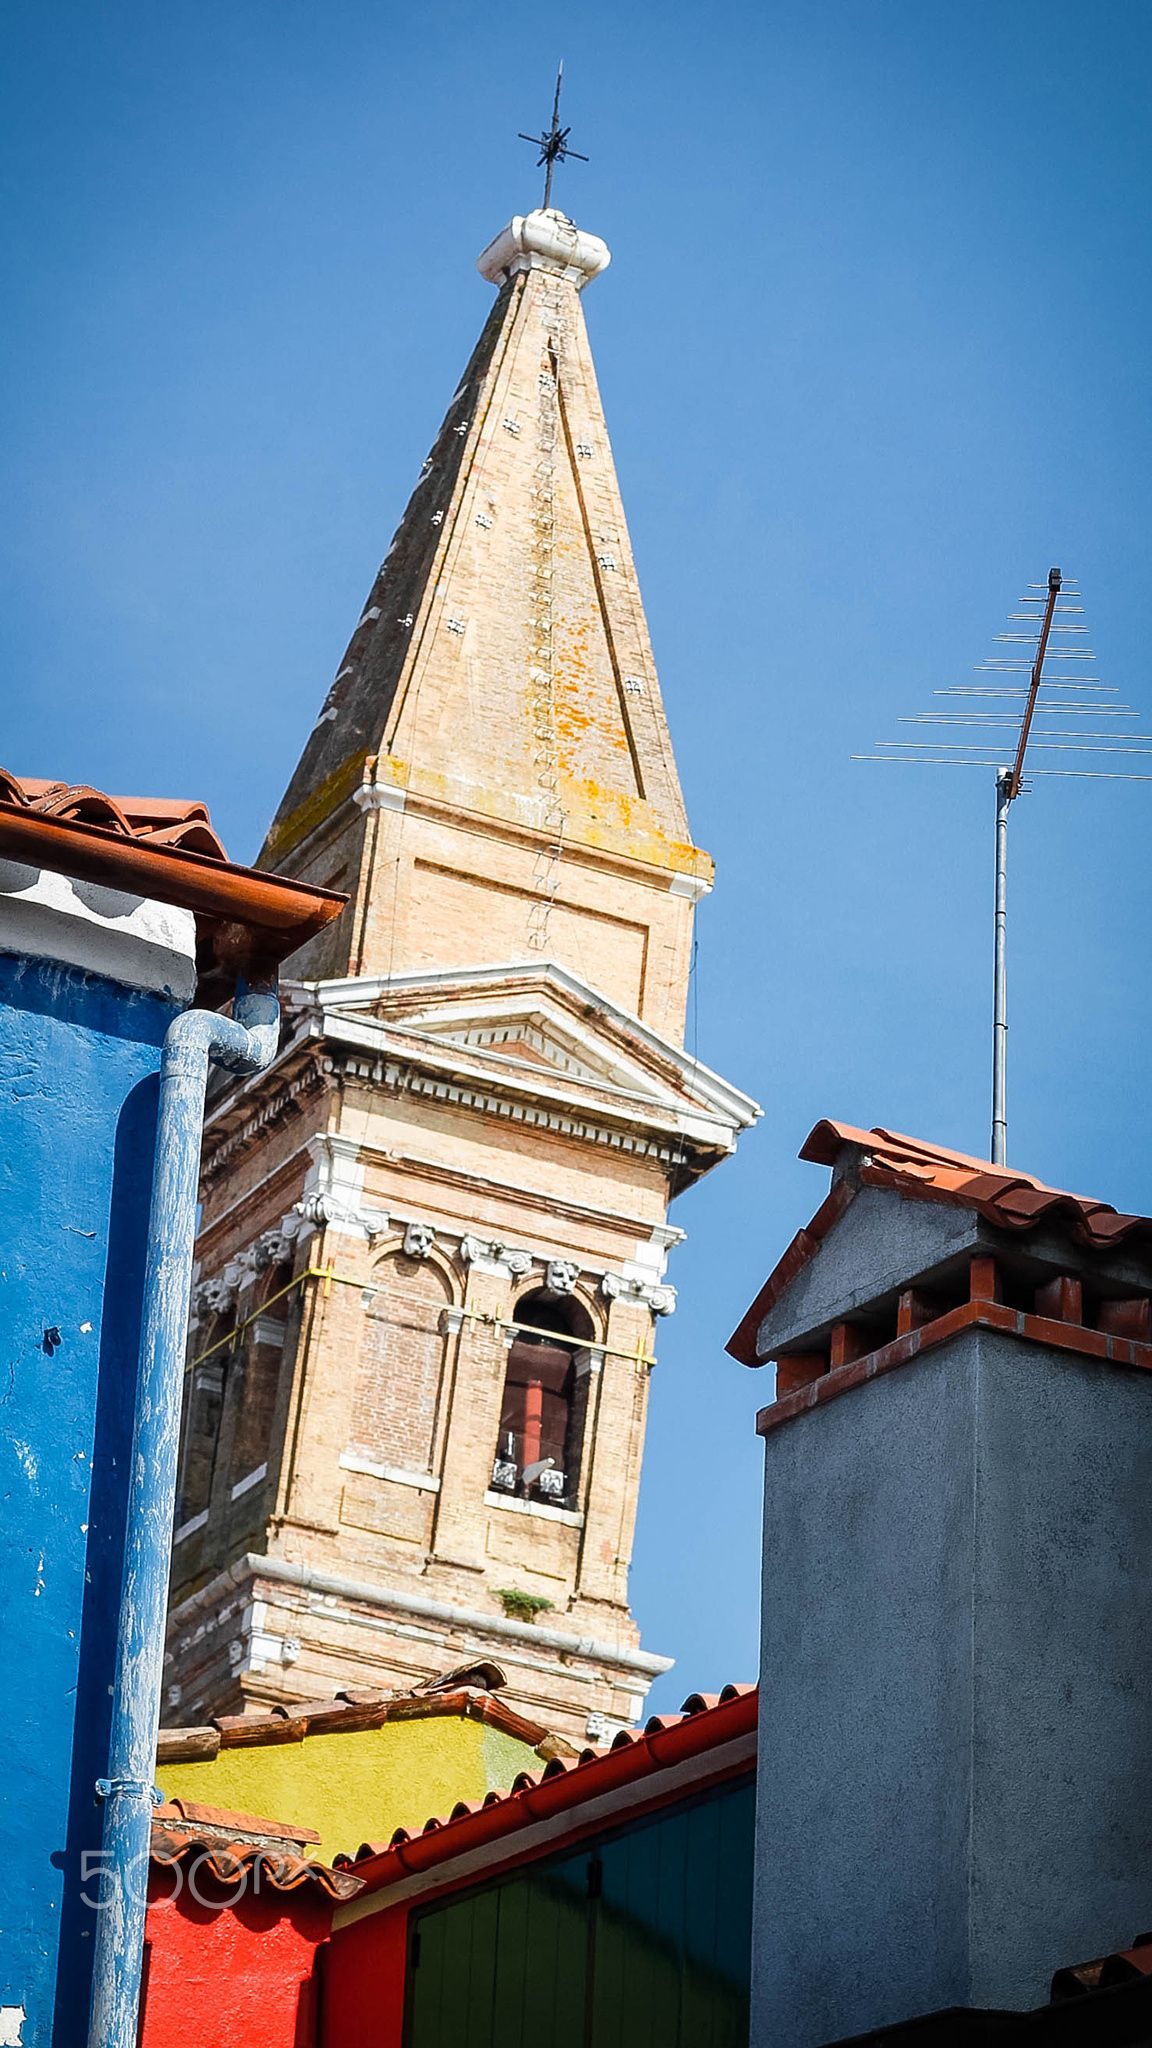 Old bell tower in balance bis - The old bell tower of Burano which is also in balance like the famous tower of Pisa.